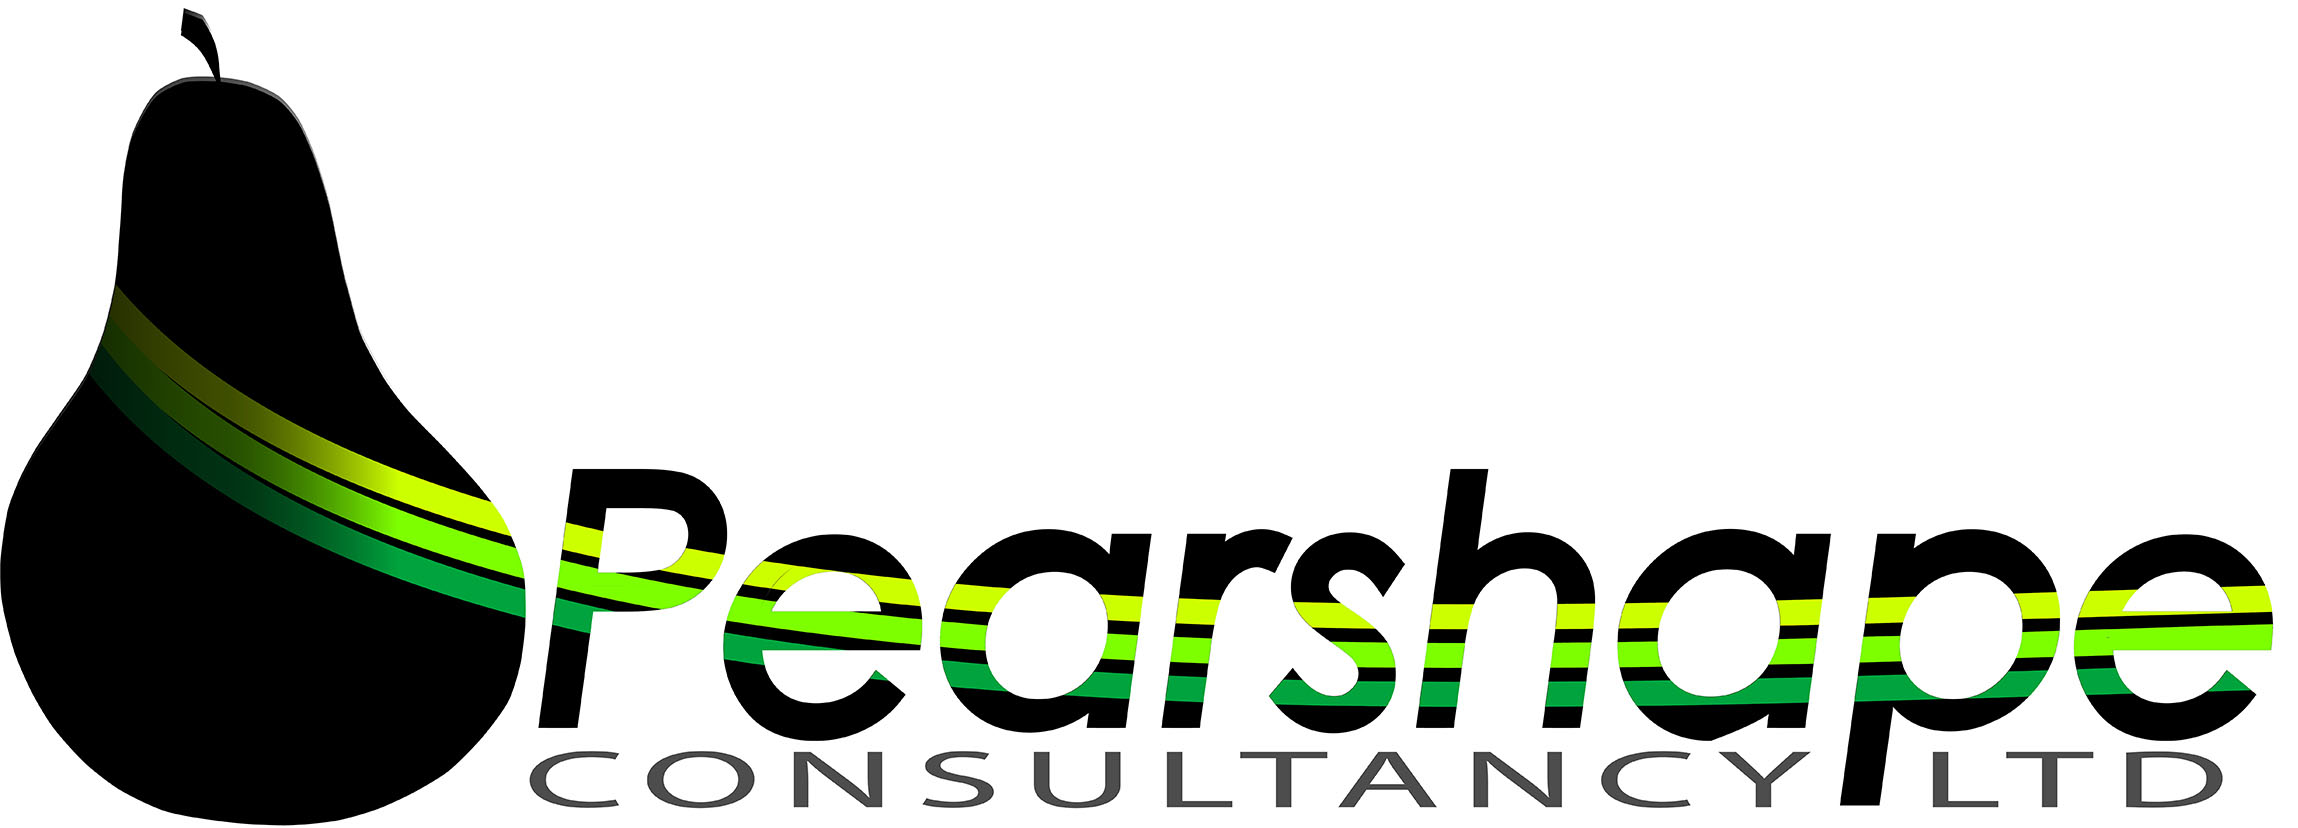 Pearshape Consulting Ltd